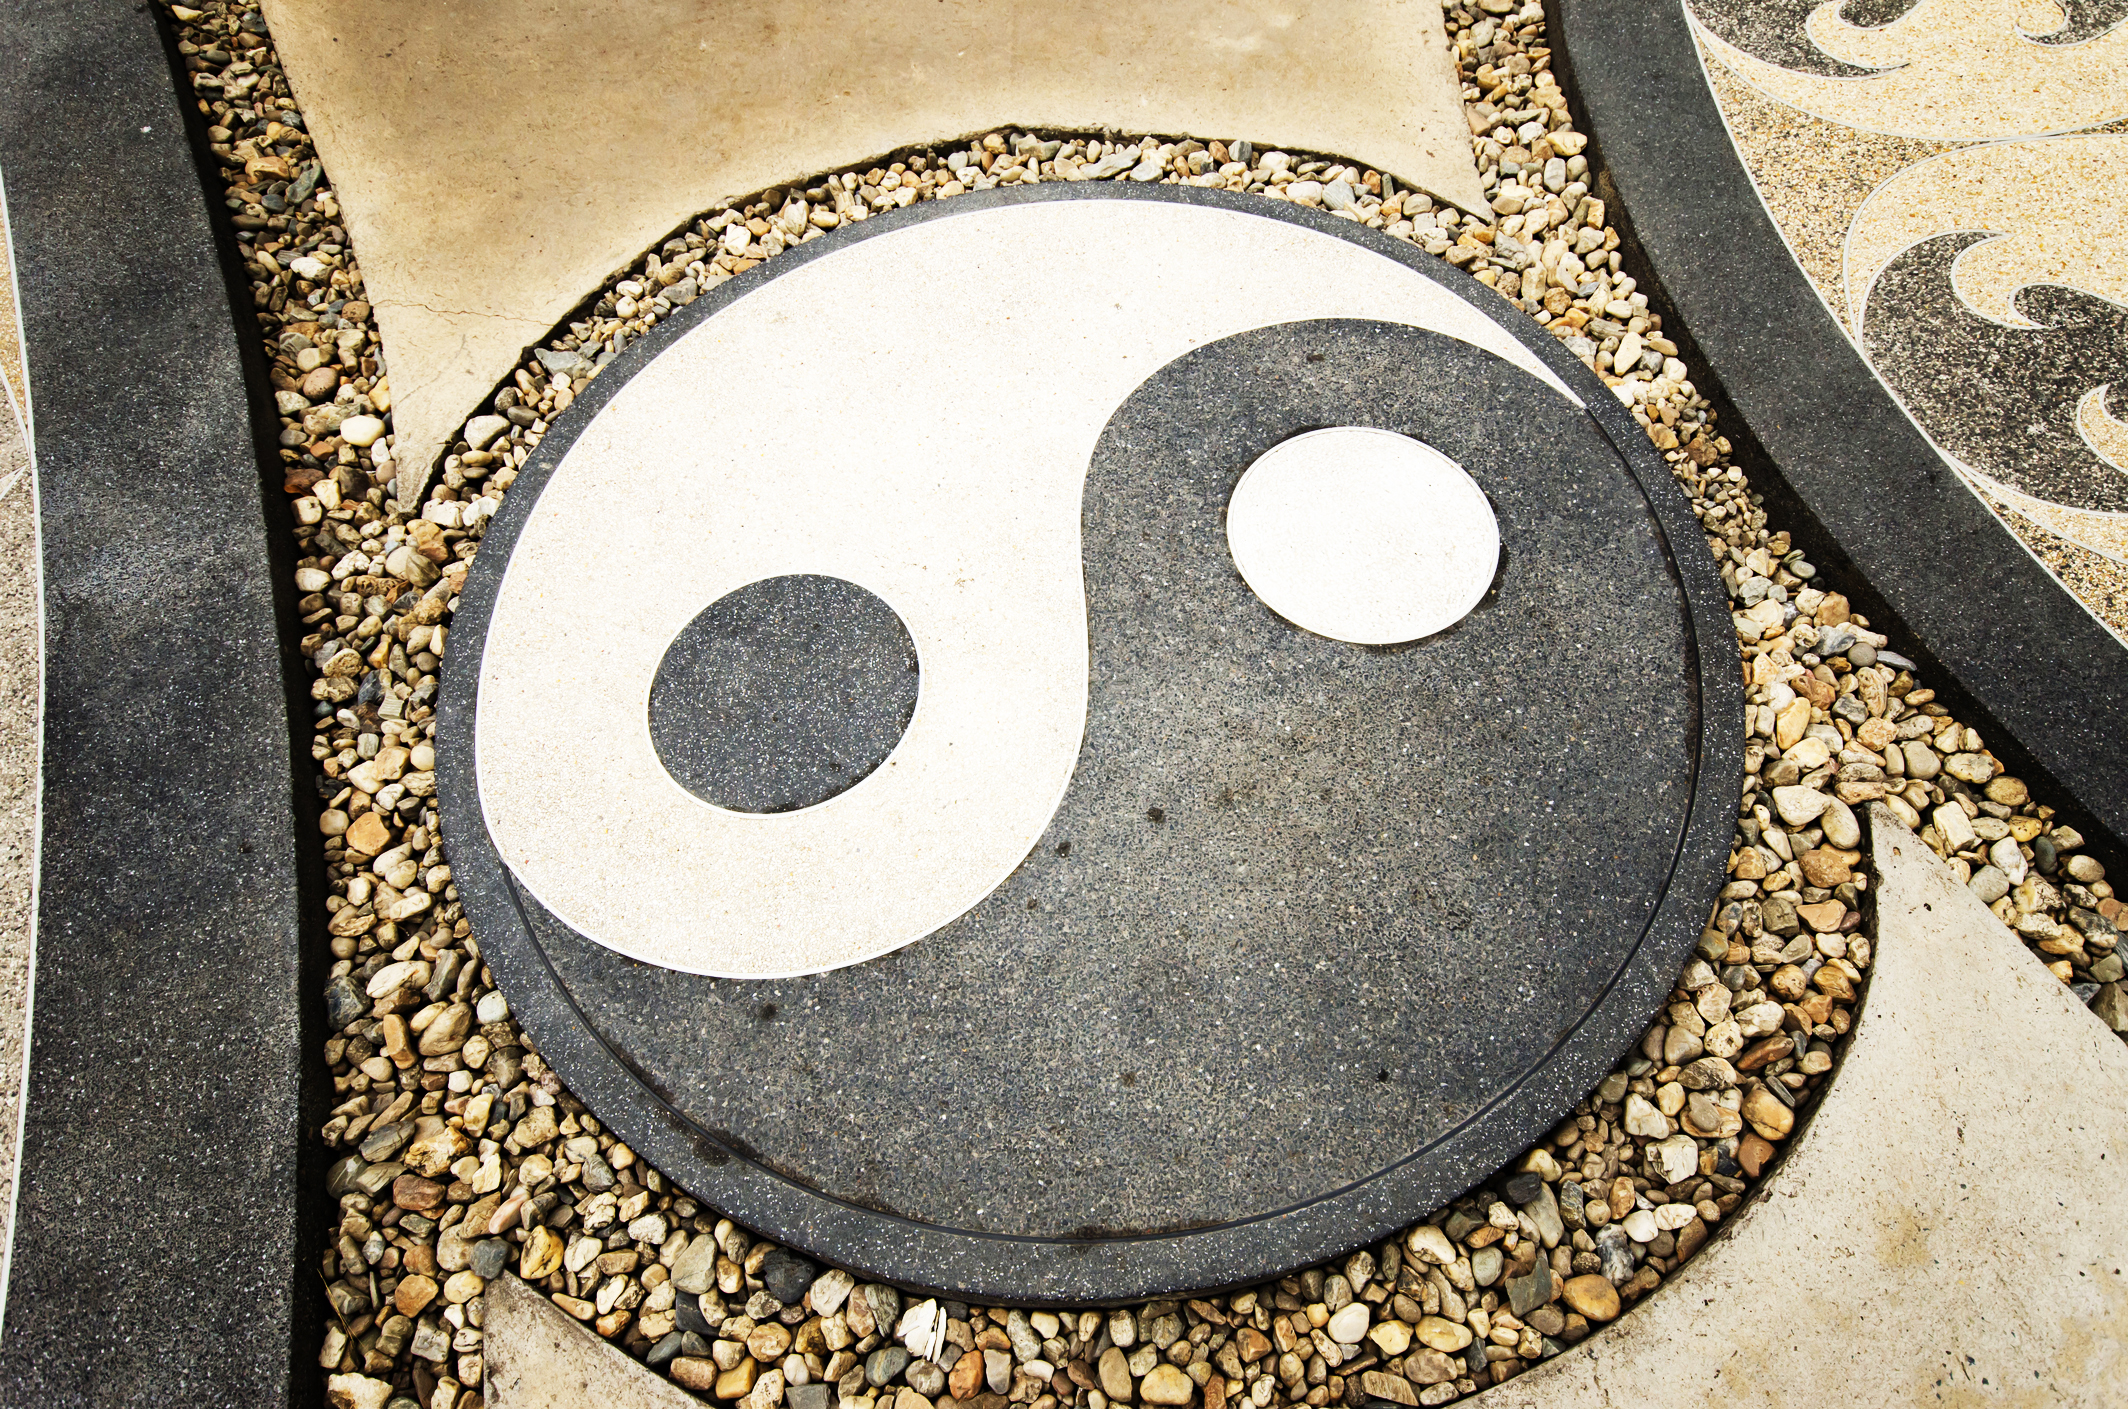 Fascinating Meaning Of The Yin Yang Sign